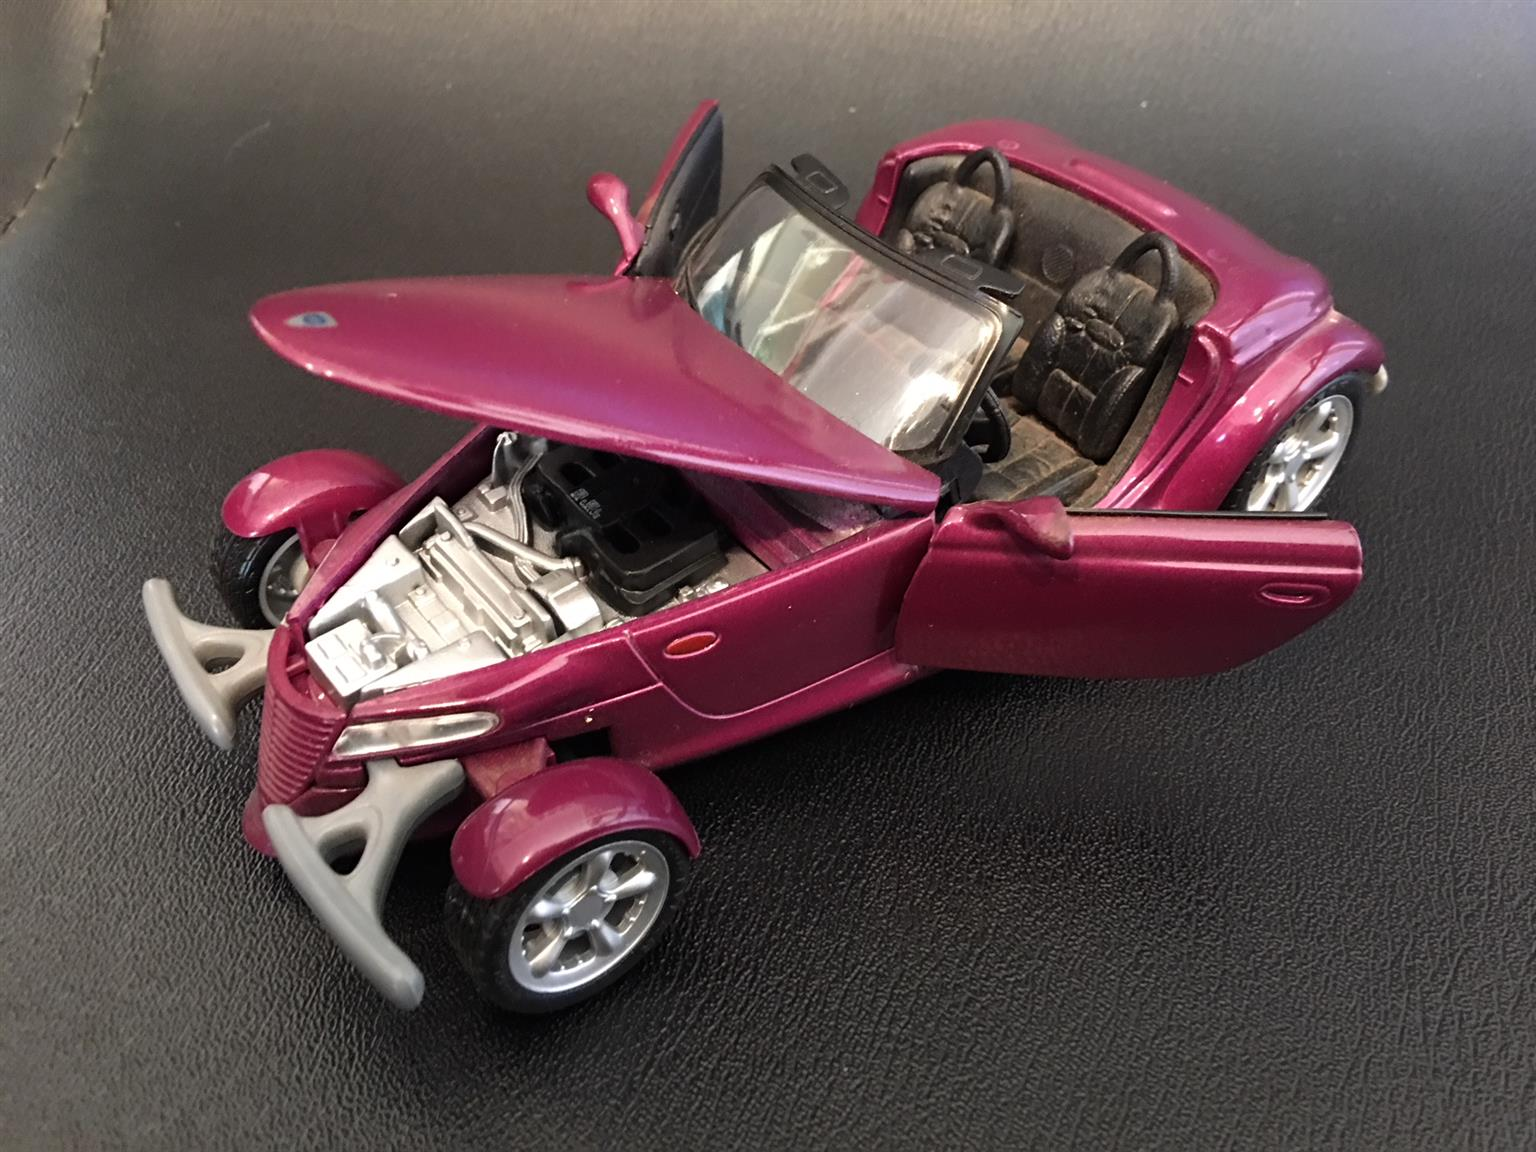 Plymouth Prawler Scale 1/24 Maisto Model Car. We have 100's available